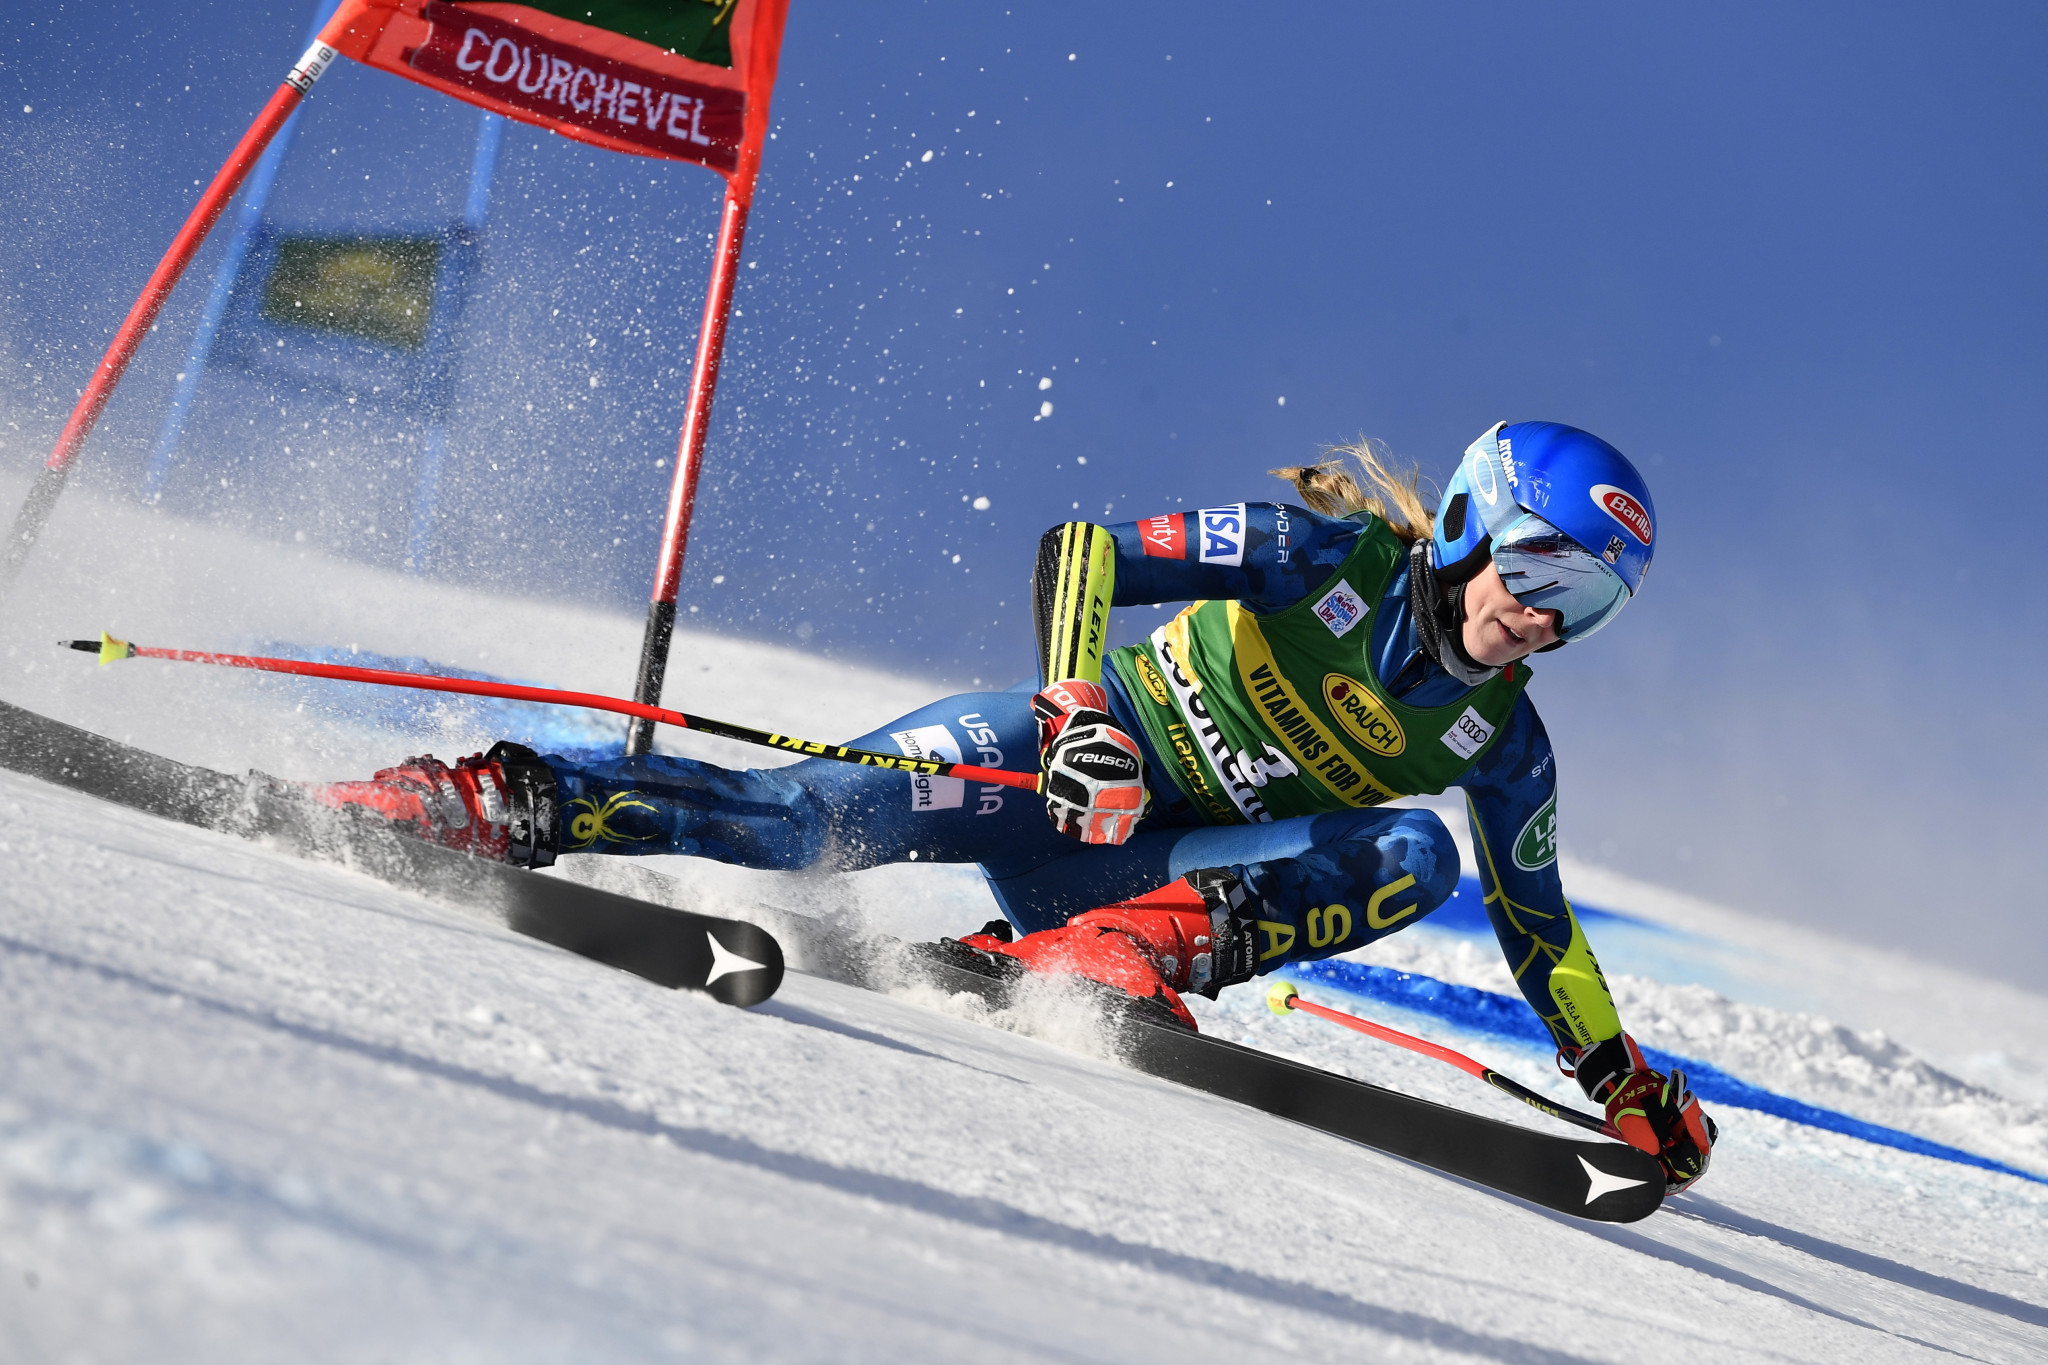 """Mikaela Shiffrin revealed """"it's not a certainty"""" that she will defend her super-G world title ©Getty Images"""